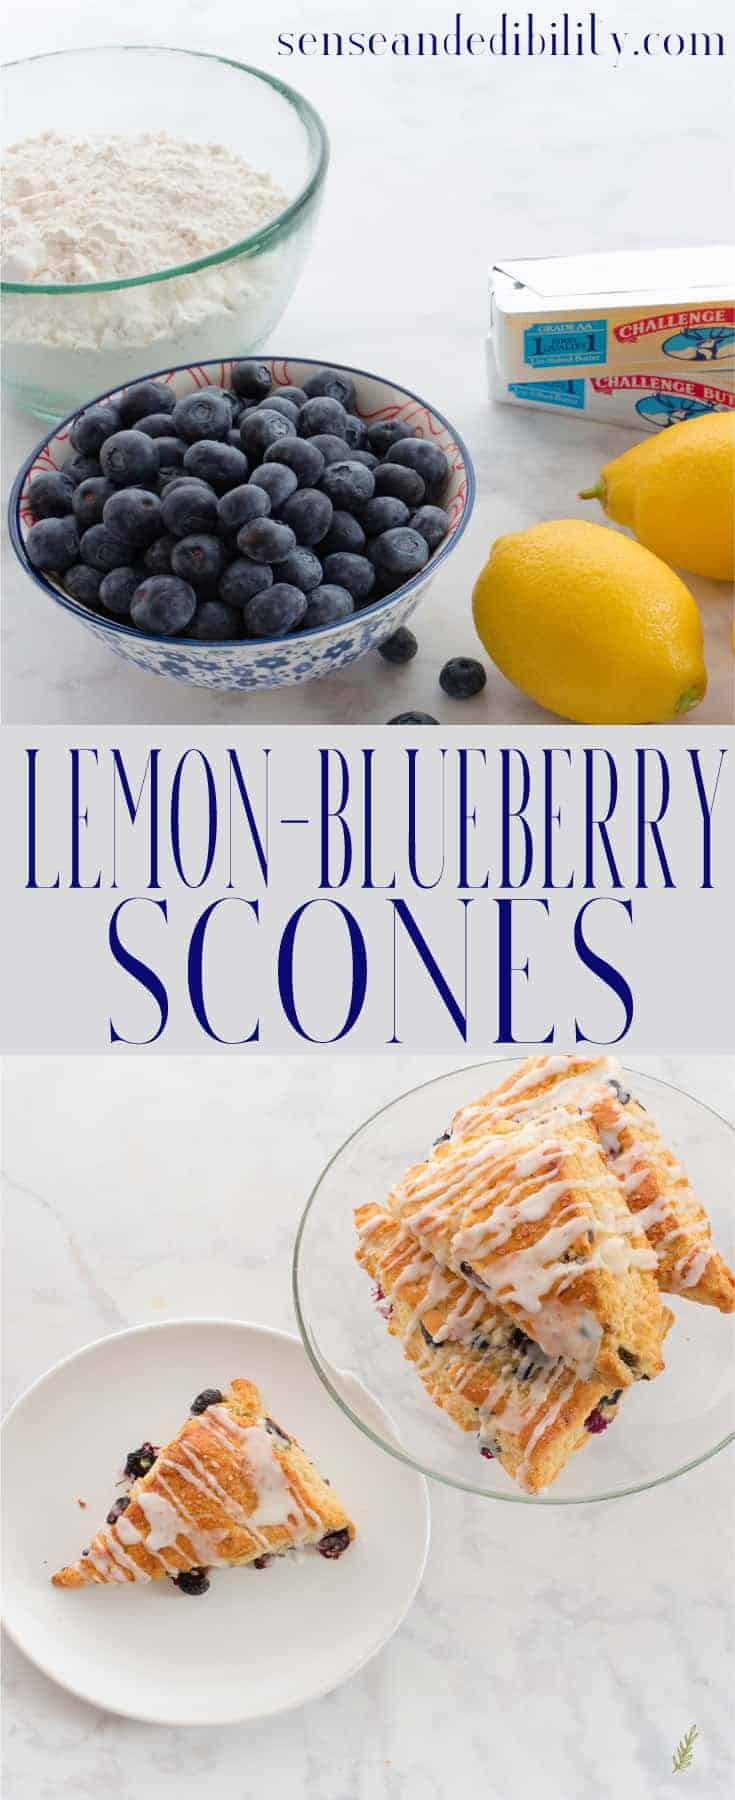 Blueberry-Lemon Scones with Lemon Glaze Pin